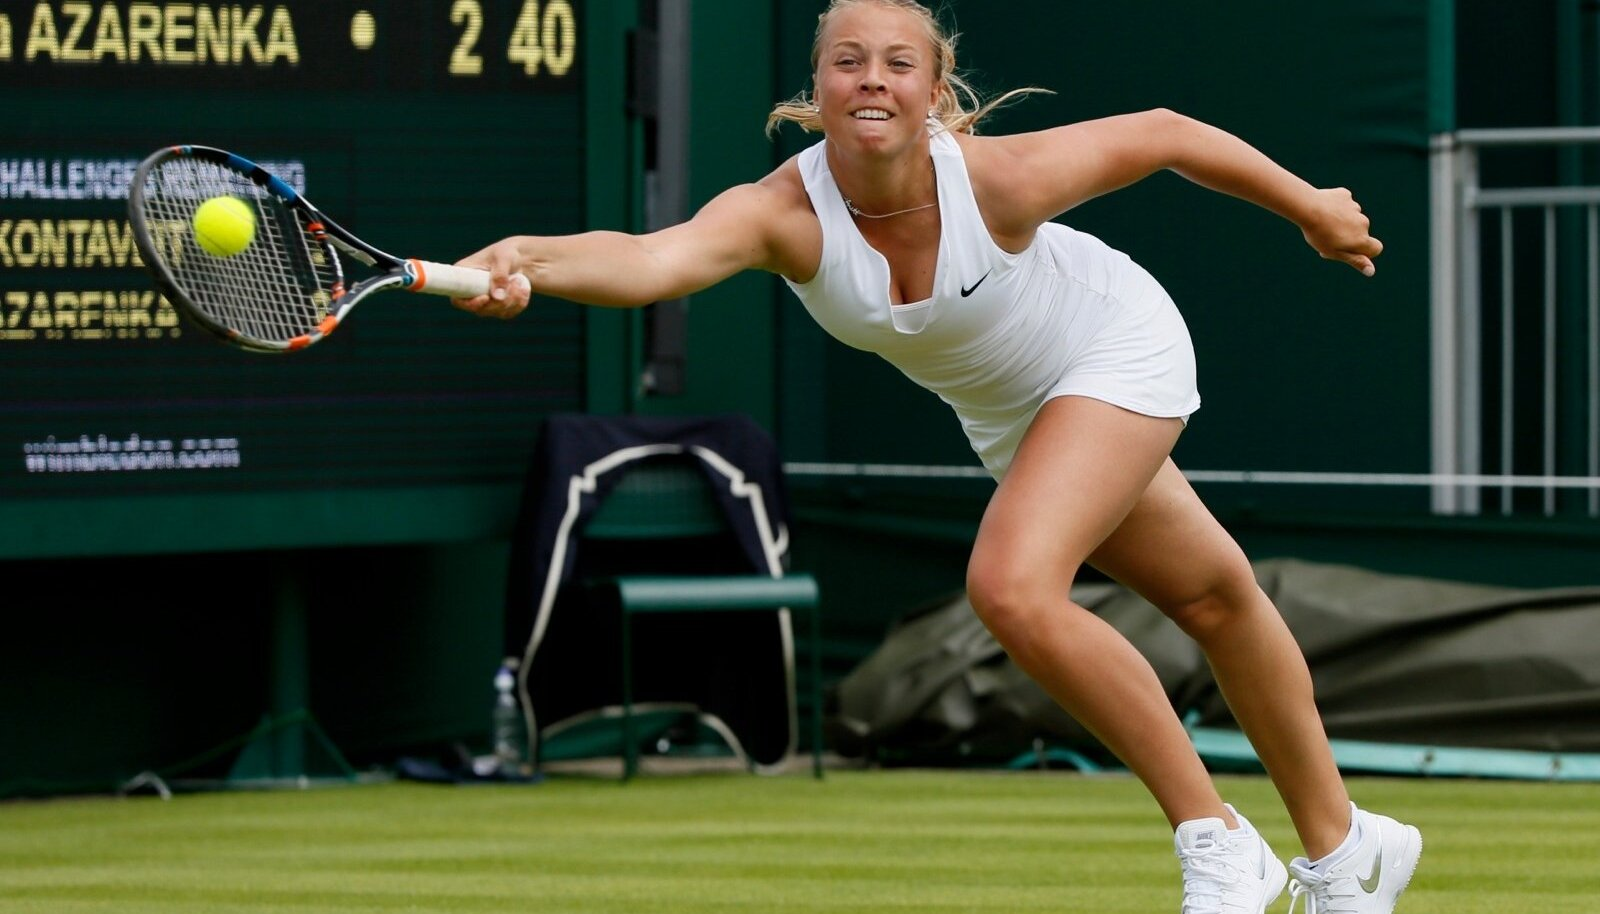 Anett Kontaveit of Estonia hits the ball during her match against Victoria Azarenka of Belarus. at the Wimbledon Tennis Championships in London